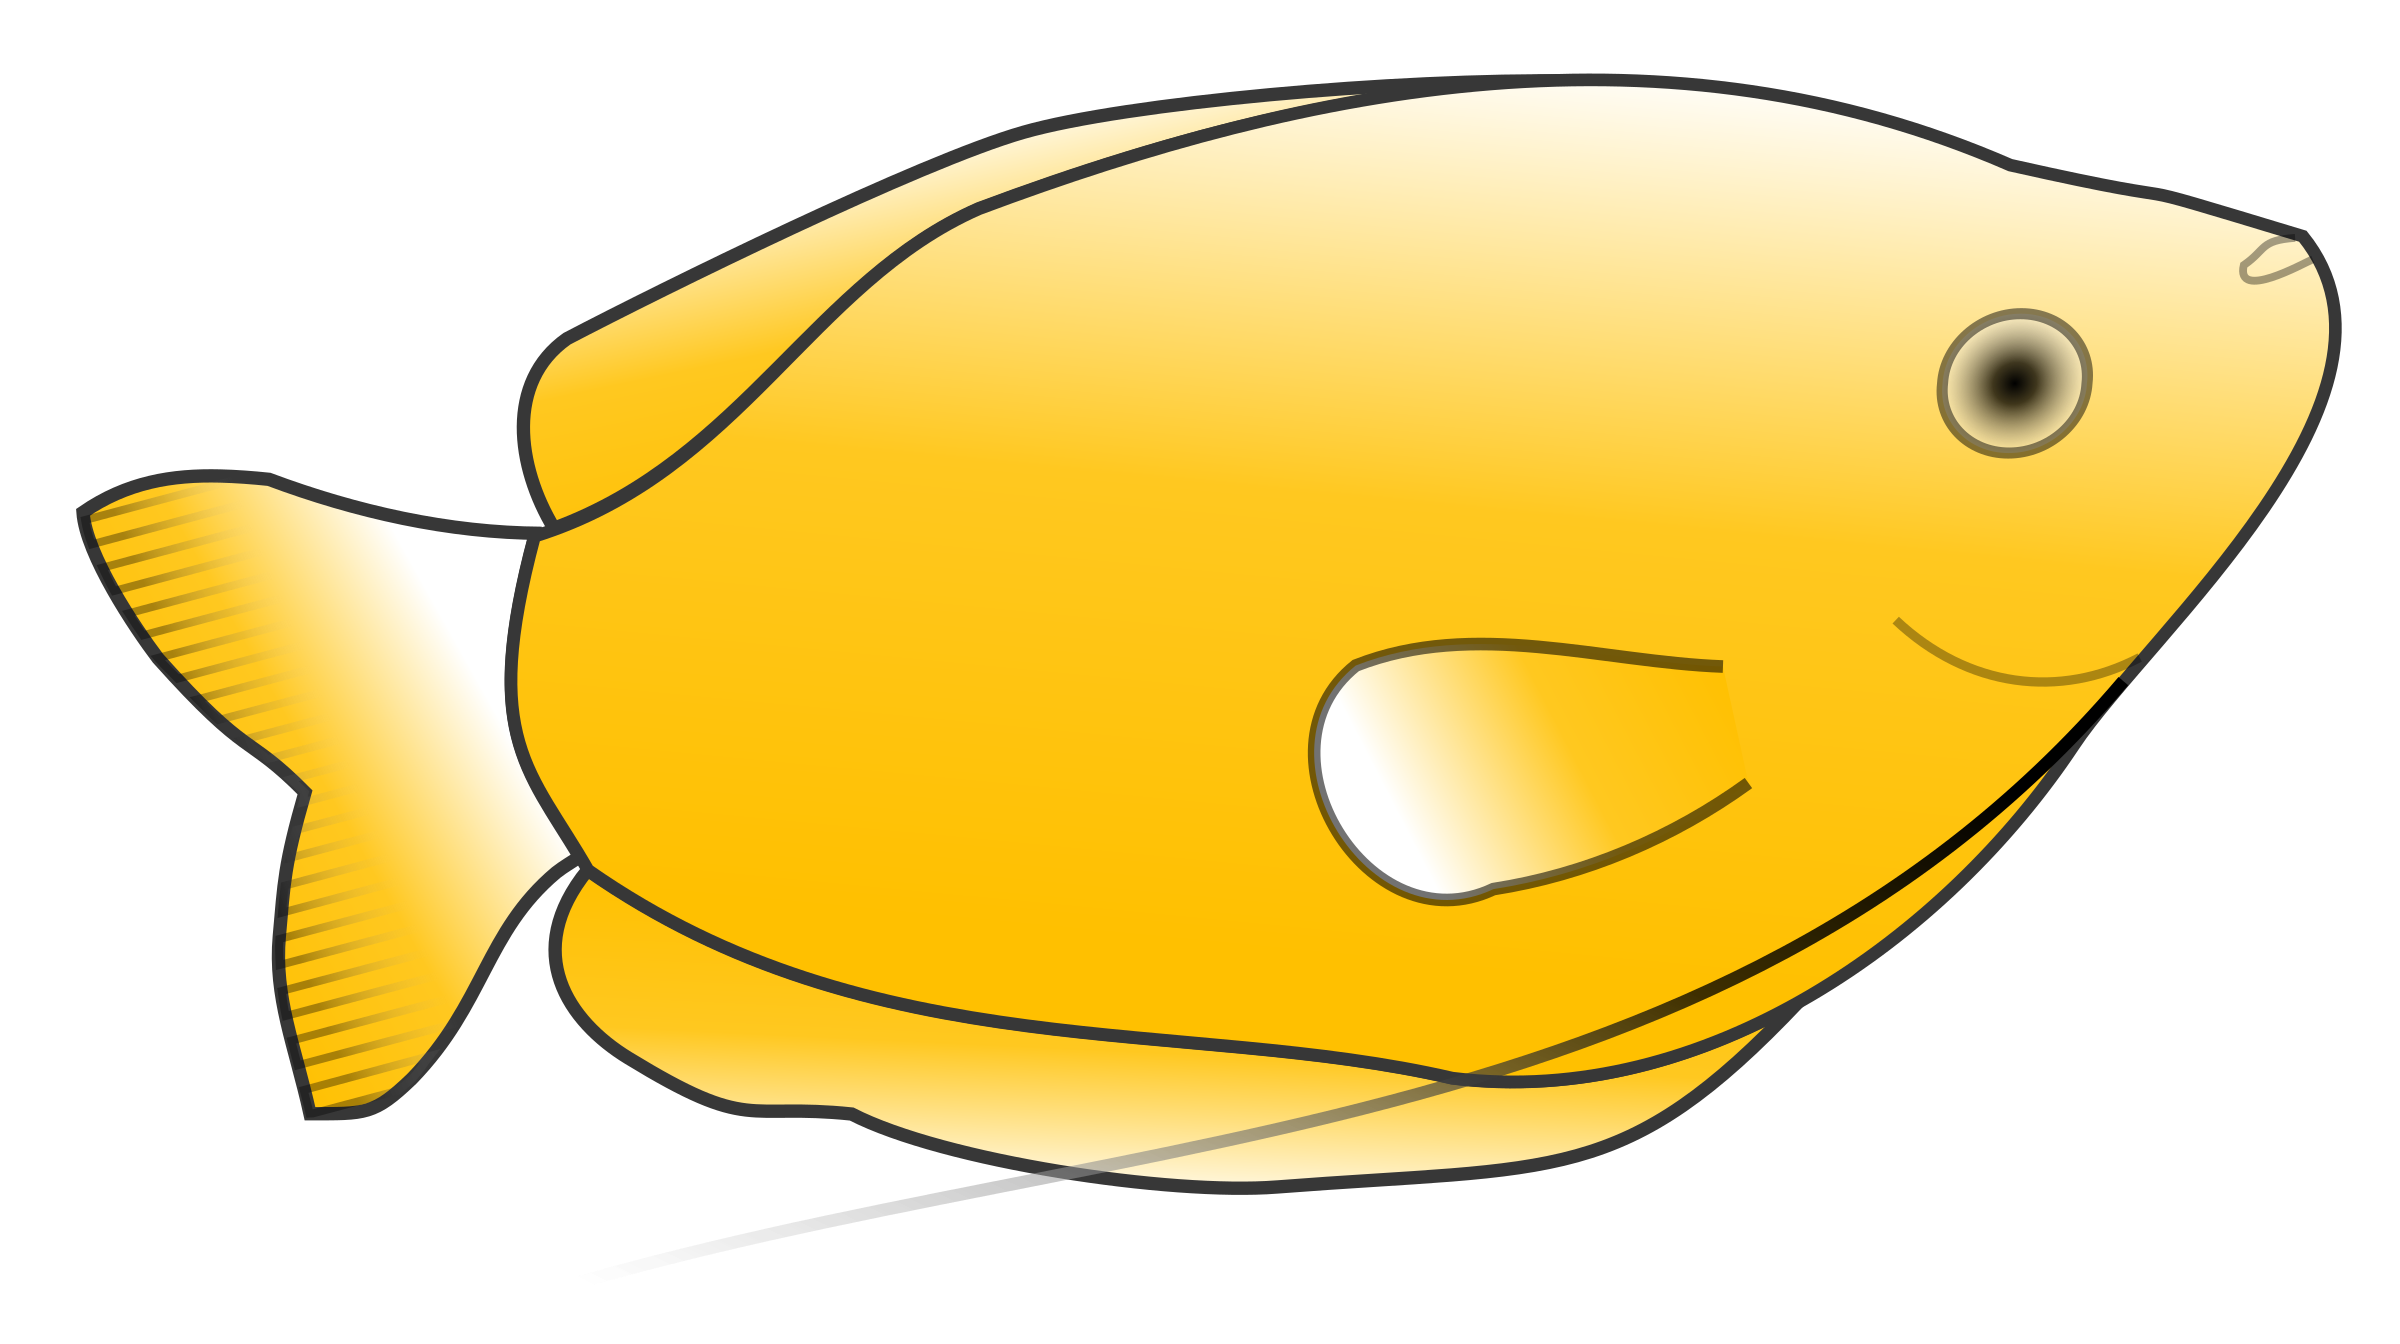 Yellow Gourami by Jonathon